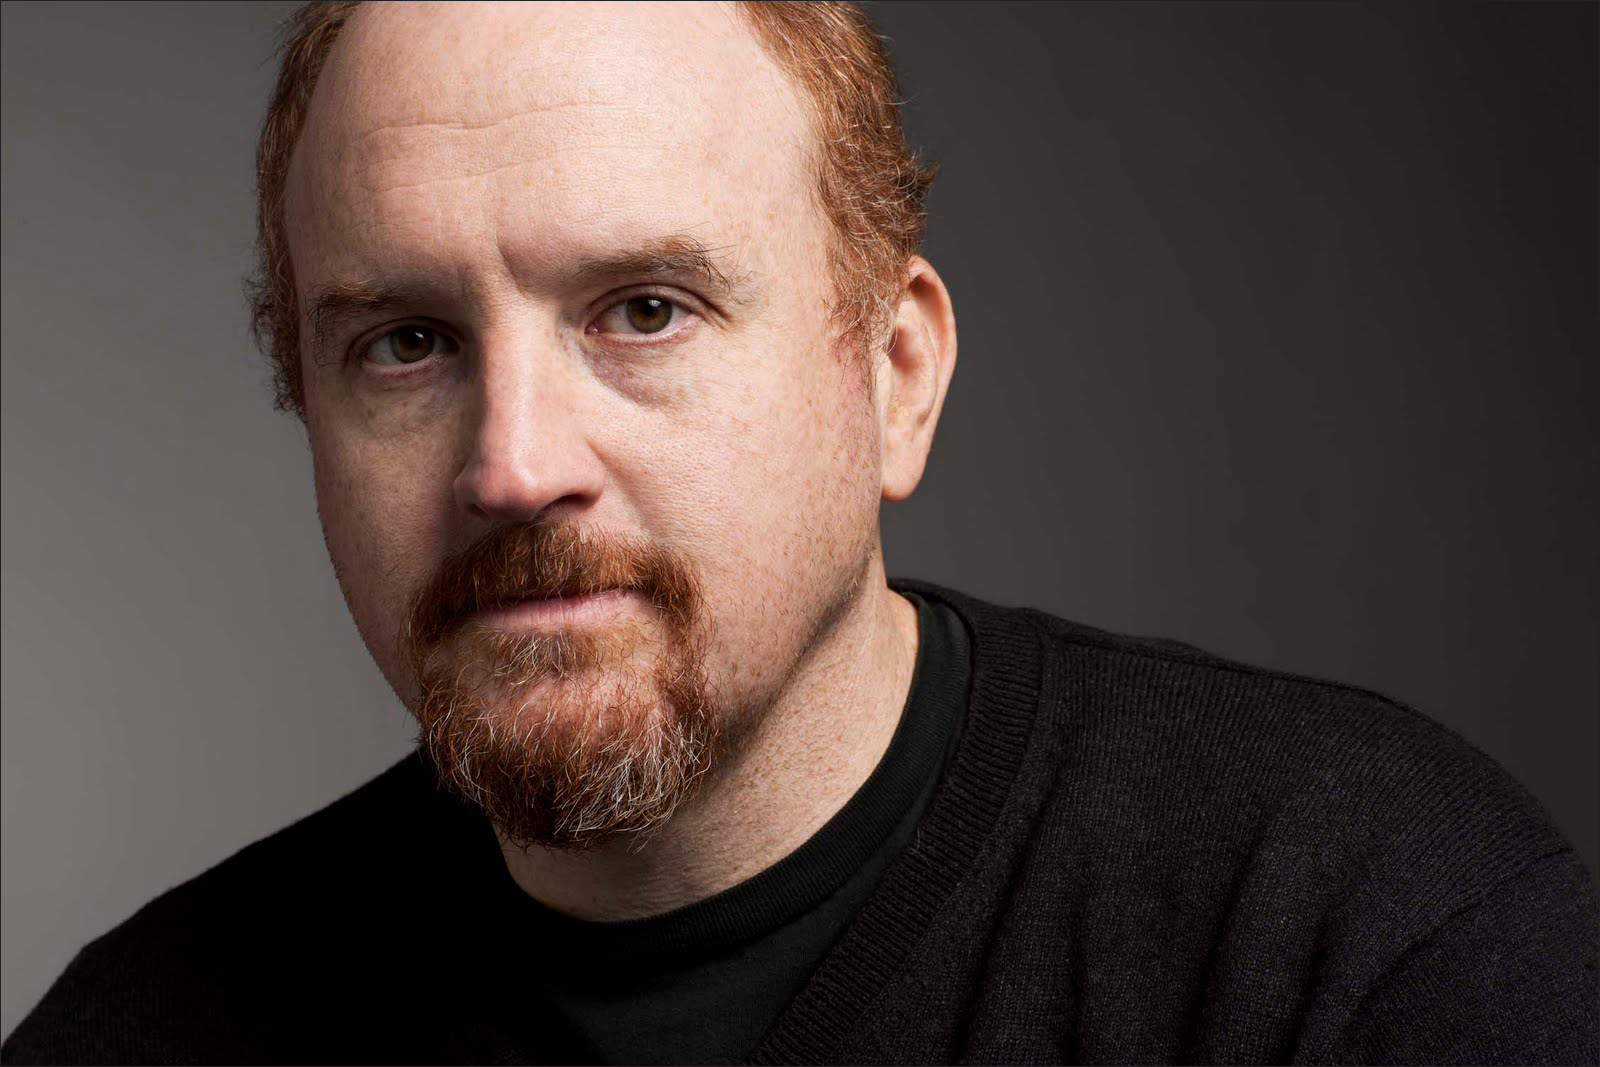 Louis C.K. earned a  million dollar salary, leaving the net worth at 18 million in 2017